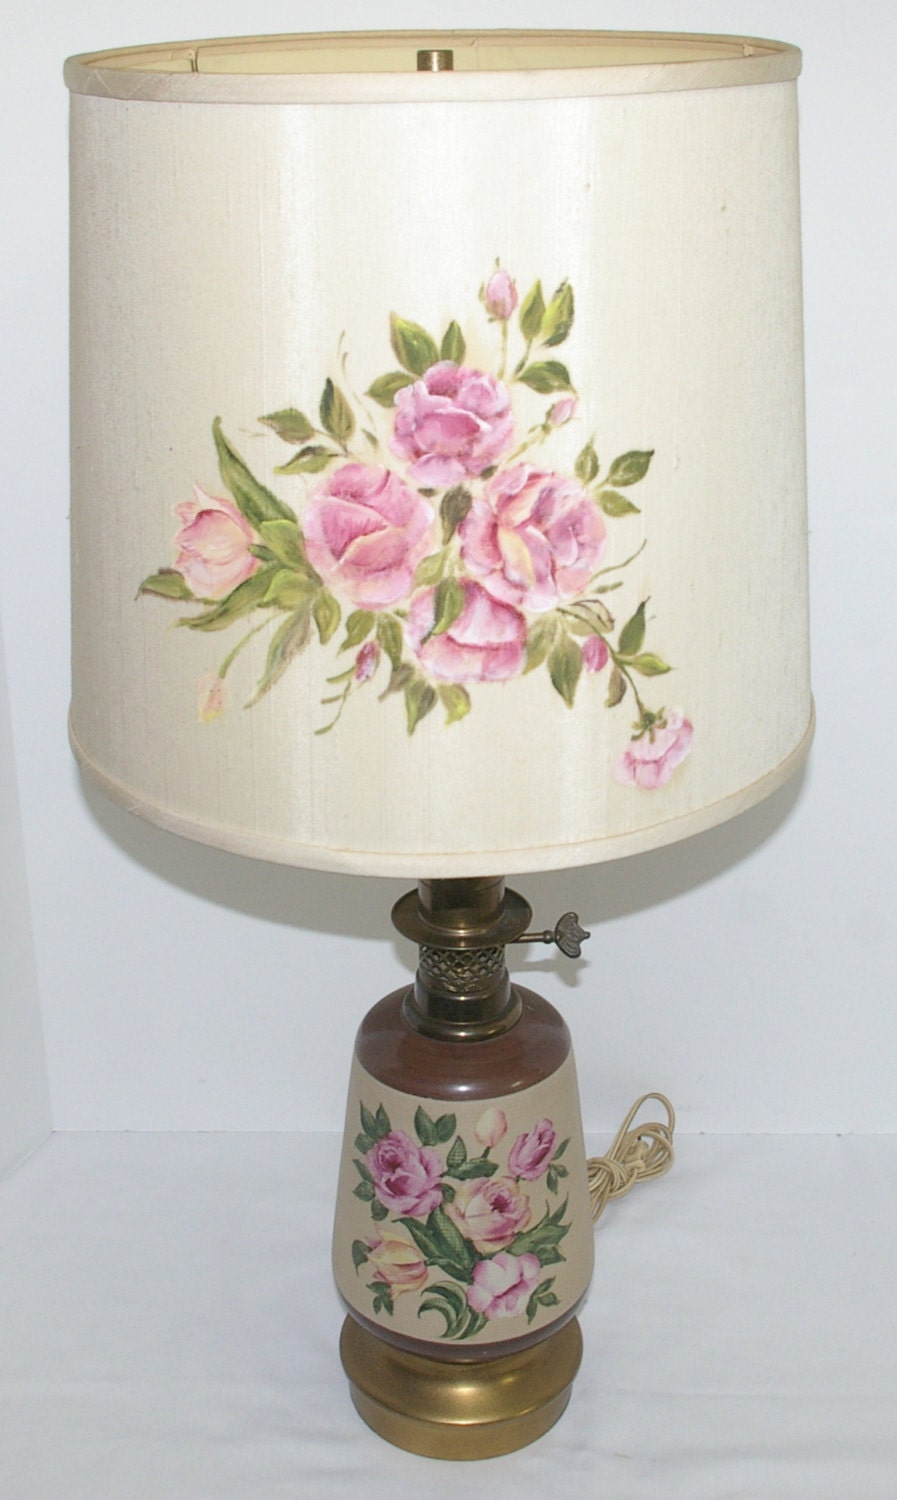 Vintage 1960s Table Lamp Pink Roses Brass Ceramic Hand Painted Etsy